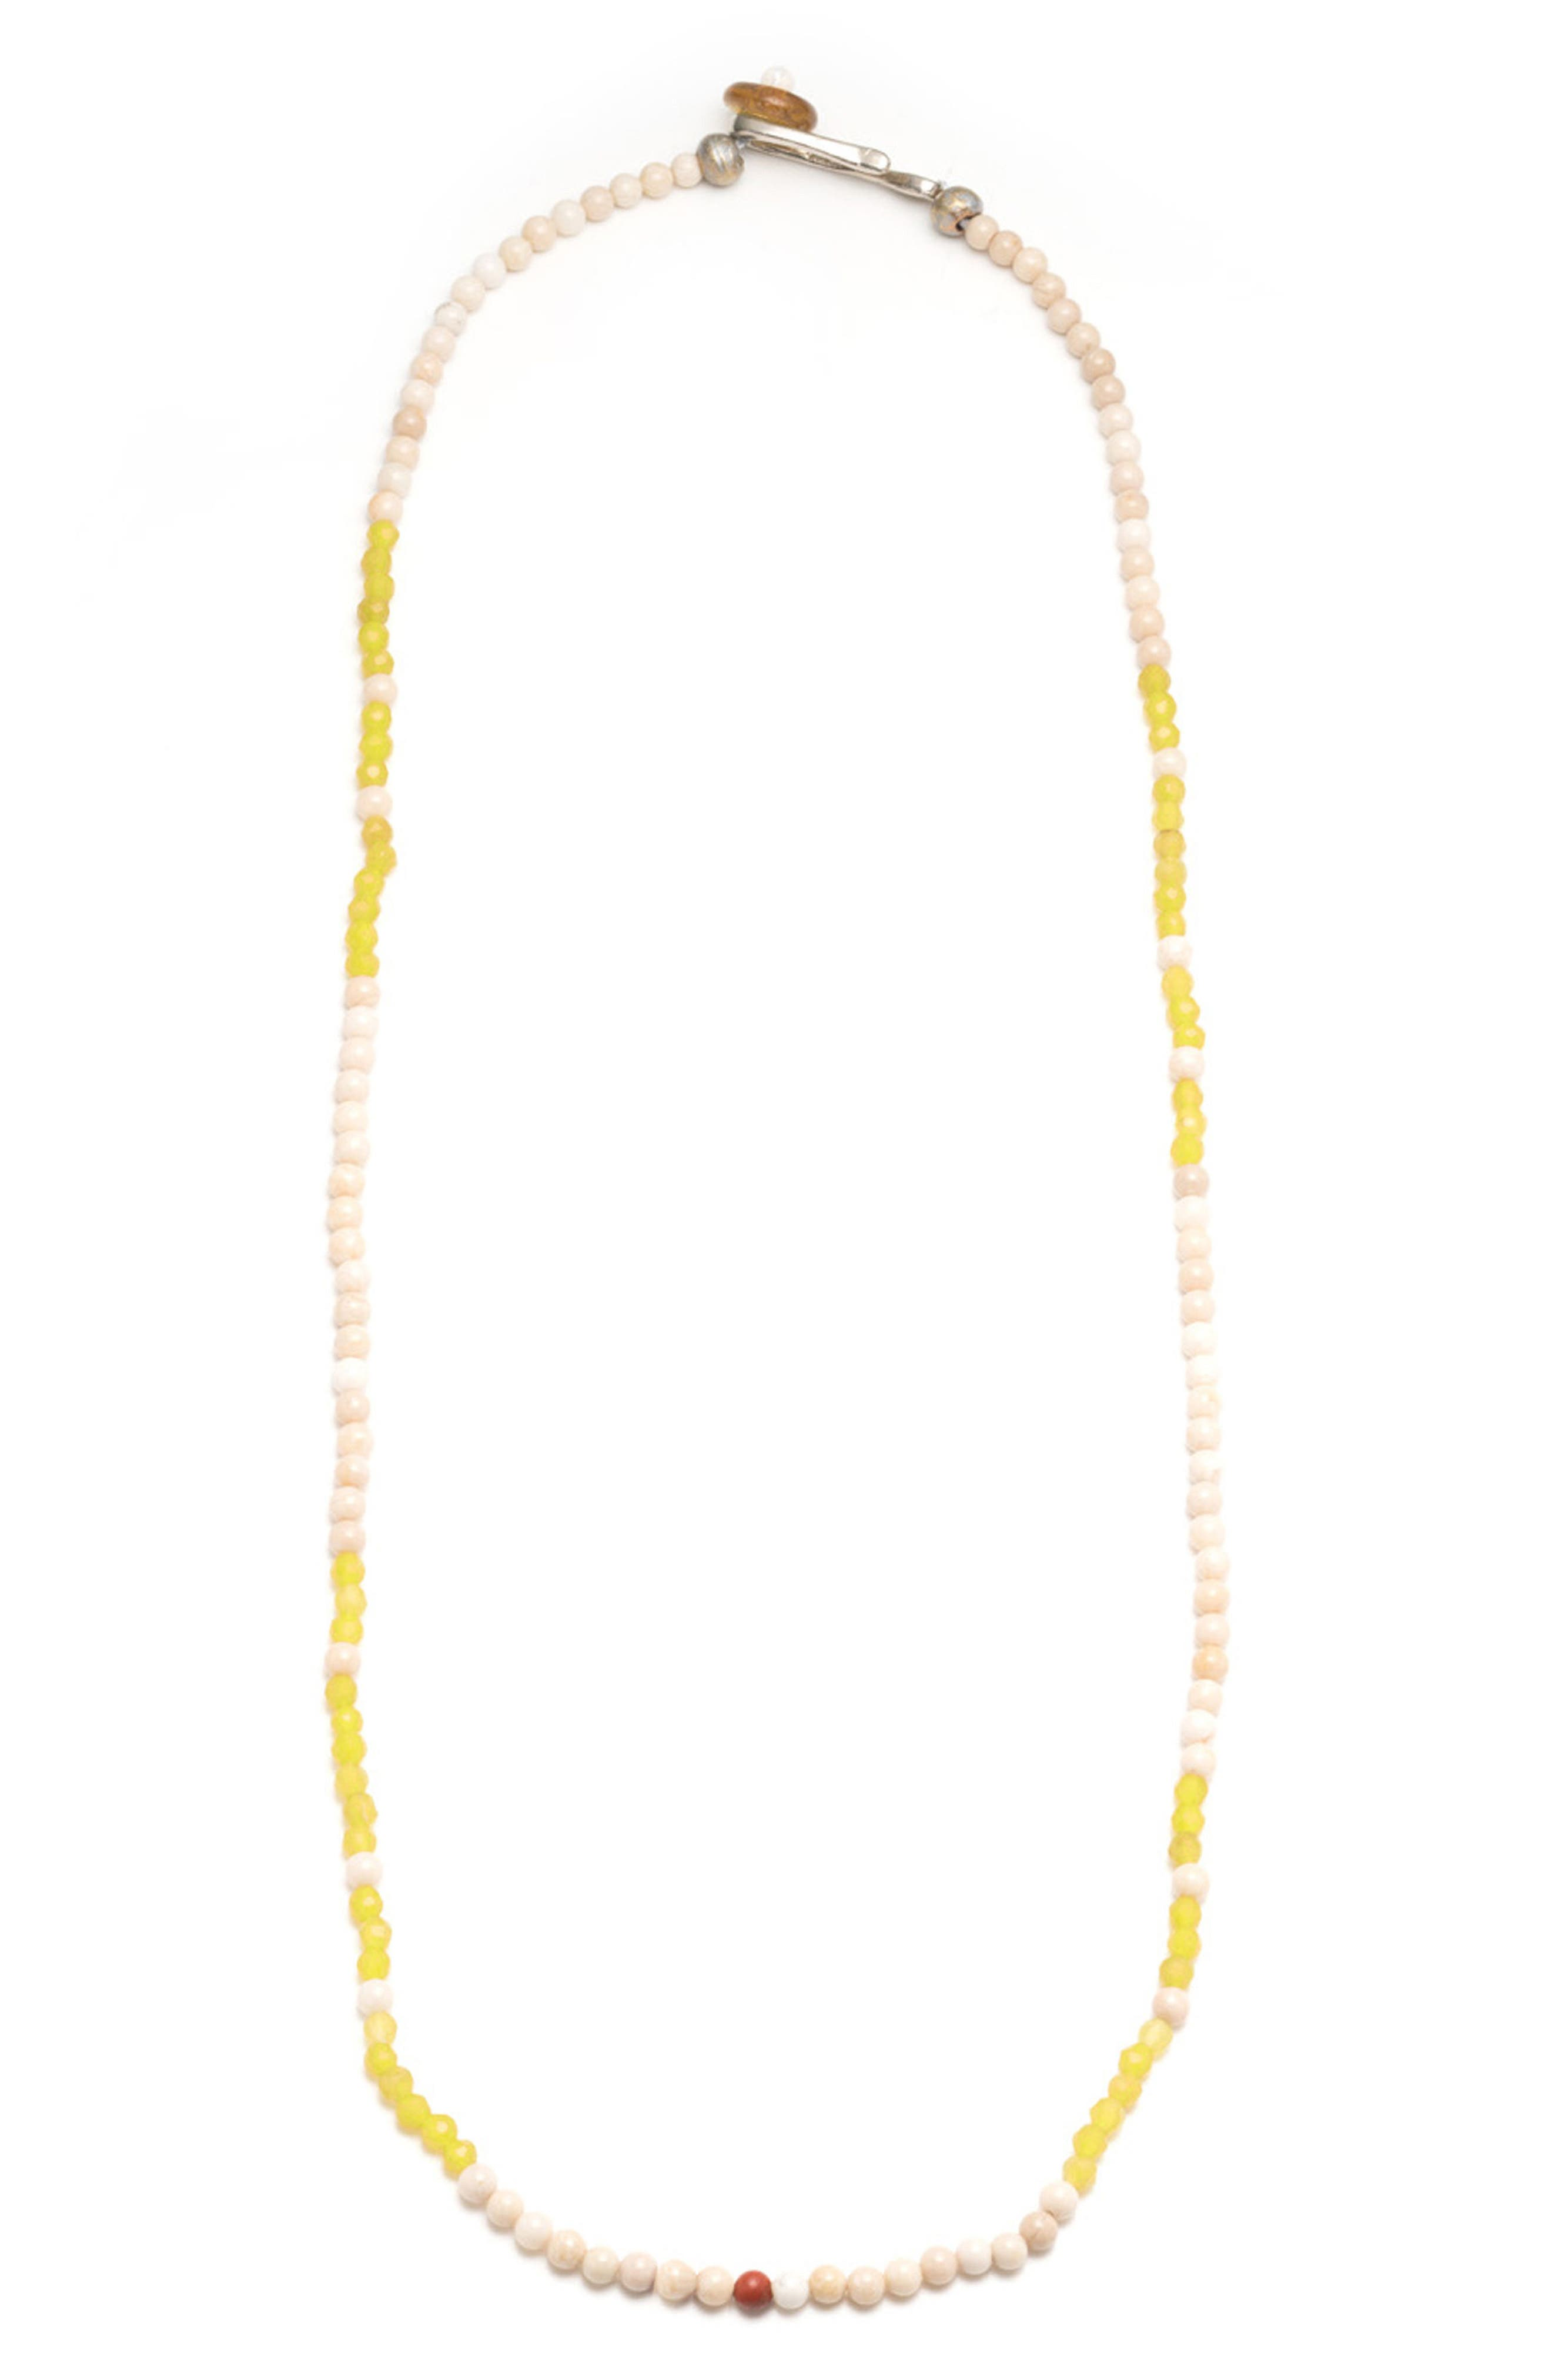 Luck Morse Necklace,                         Main,                         color, Yellow/ White